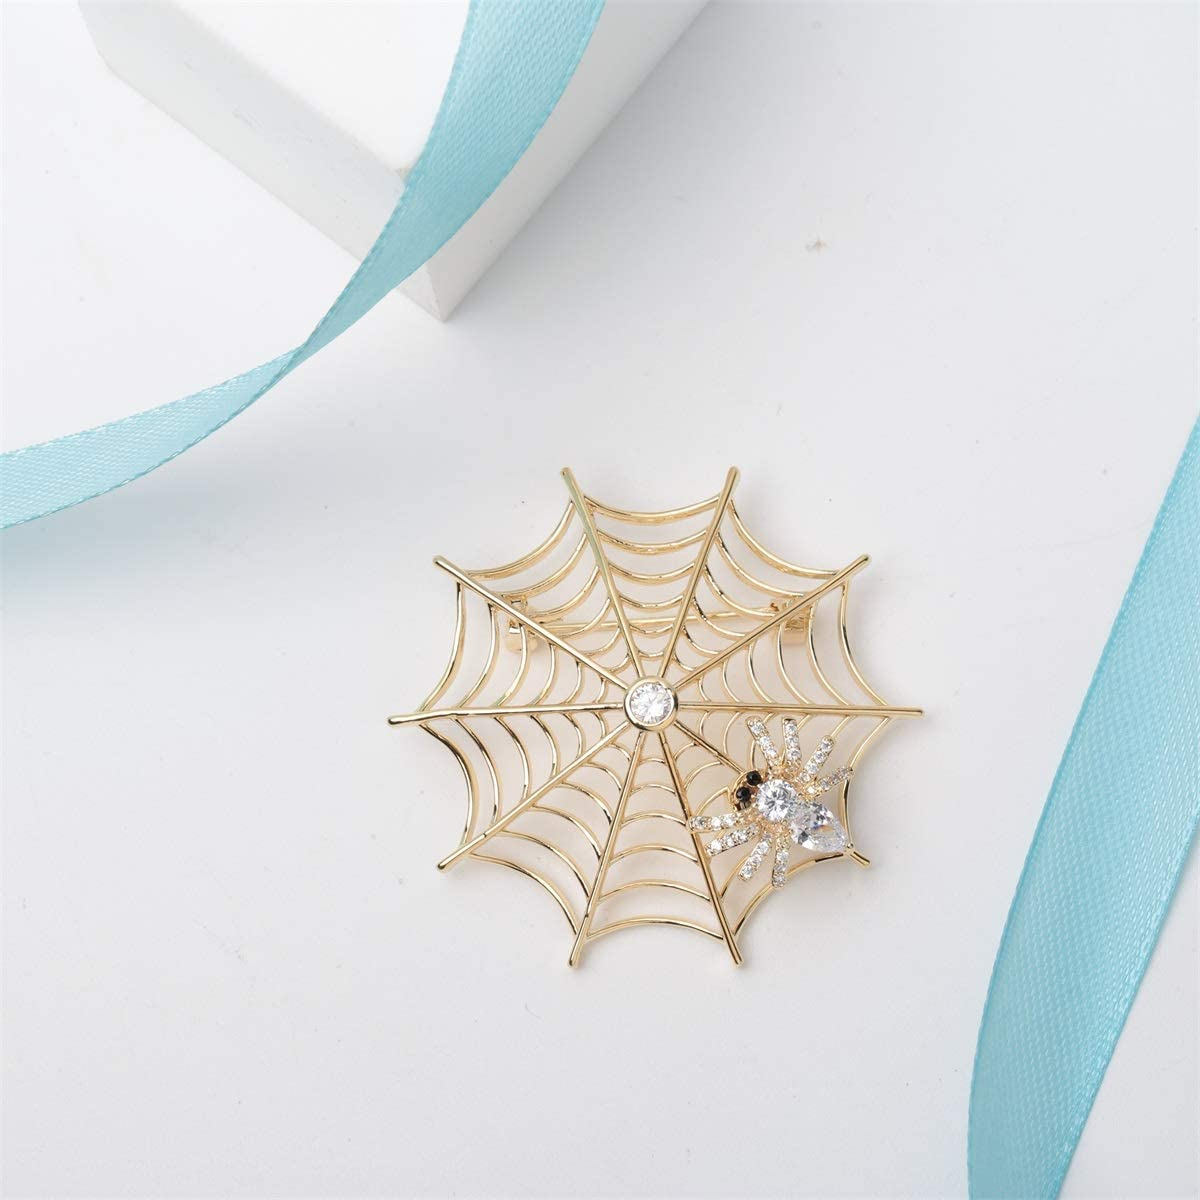 Hiddleston Victorian Style Cubic-Zirconia Spider Web Breast Brooch Pin Accessory Costume Halloween Party Jewelry Gift for Women Teen Girl